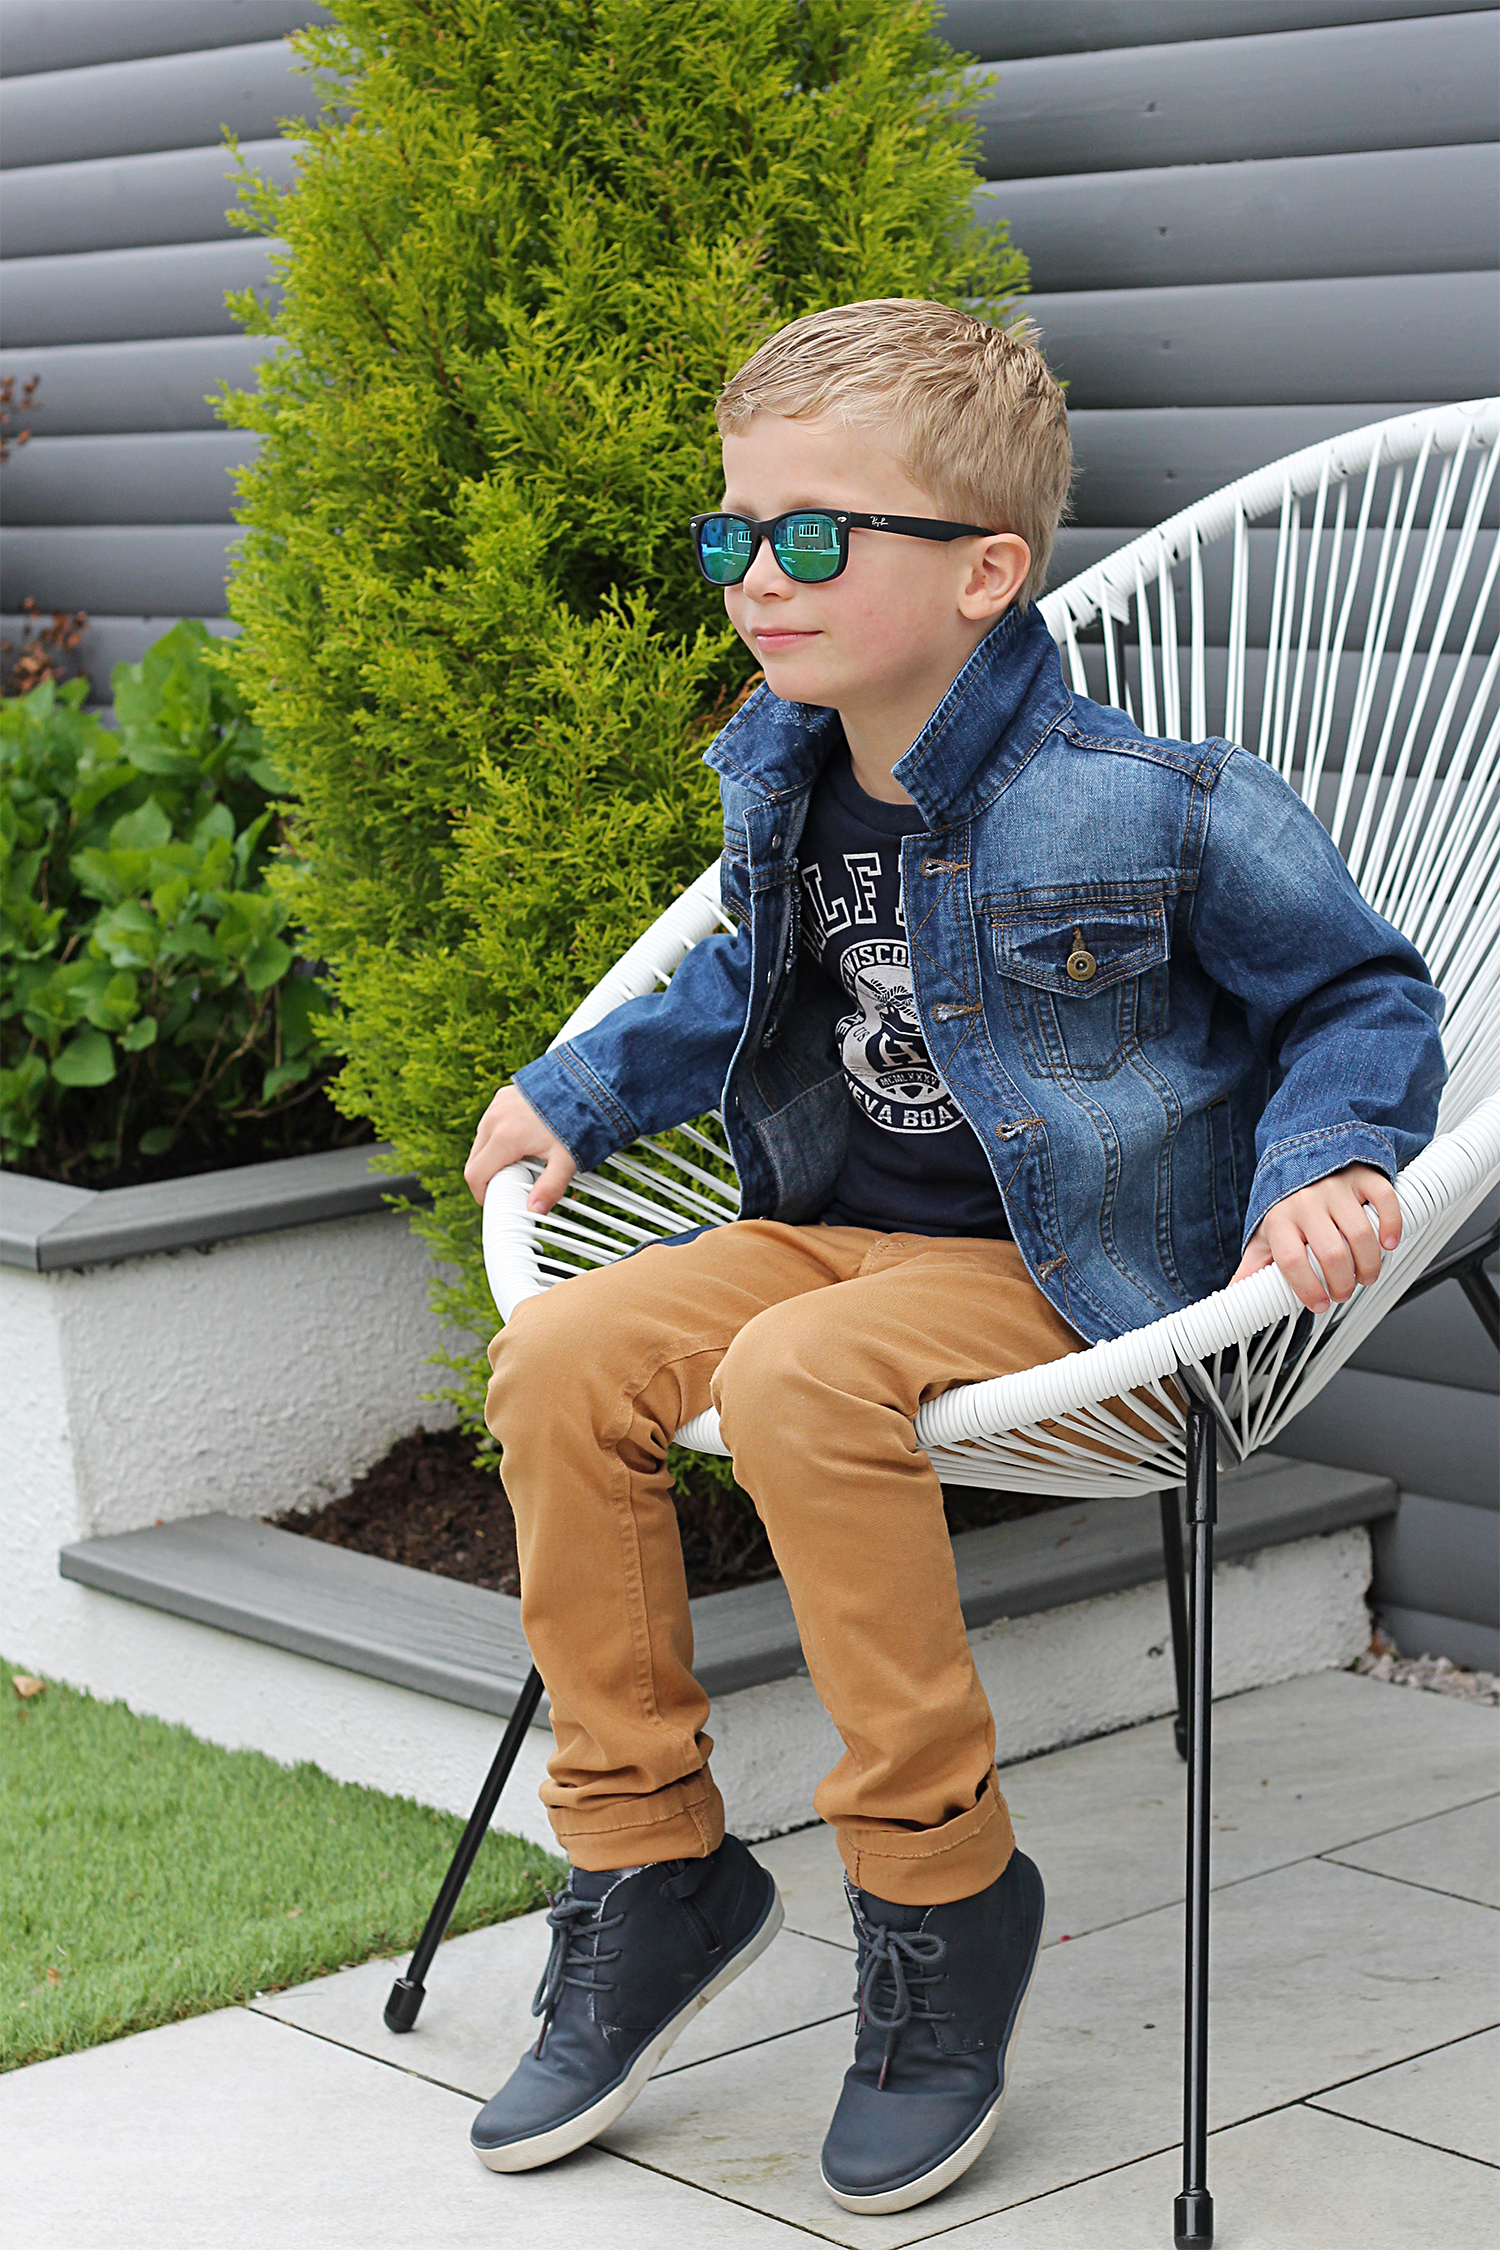 Little Cigogne Kid's shopping online subscription kids stylist services kids fashion